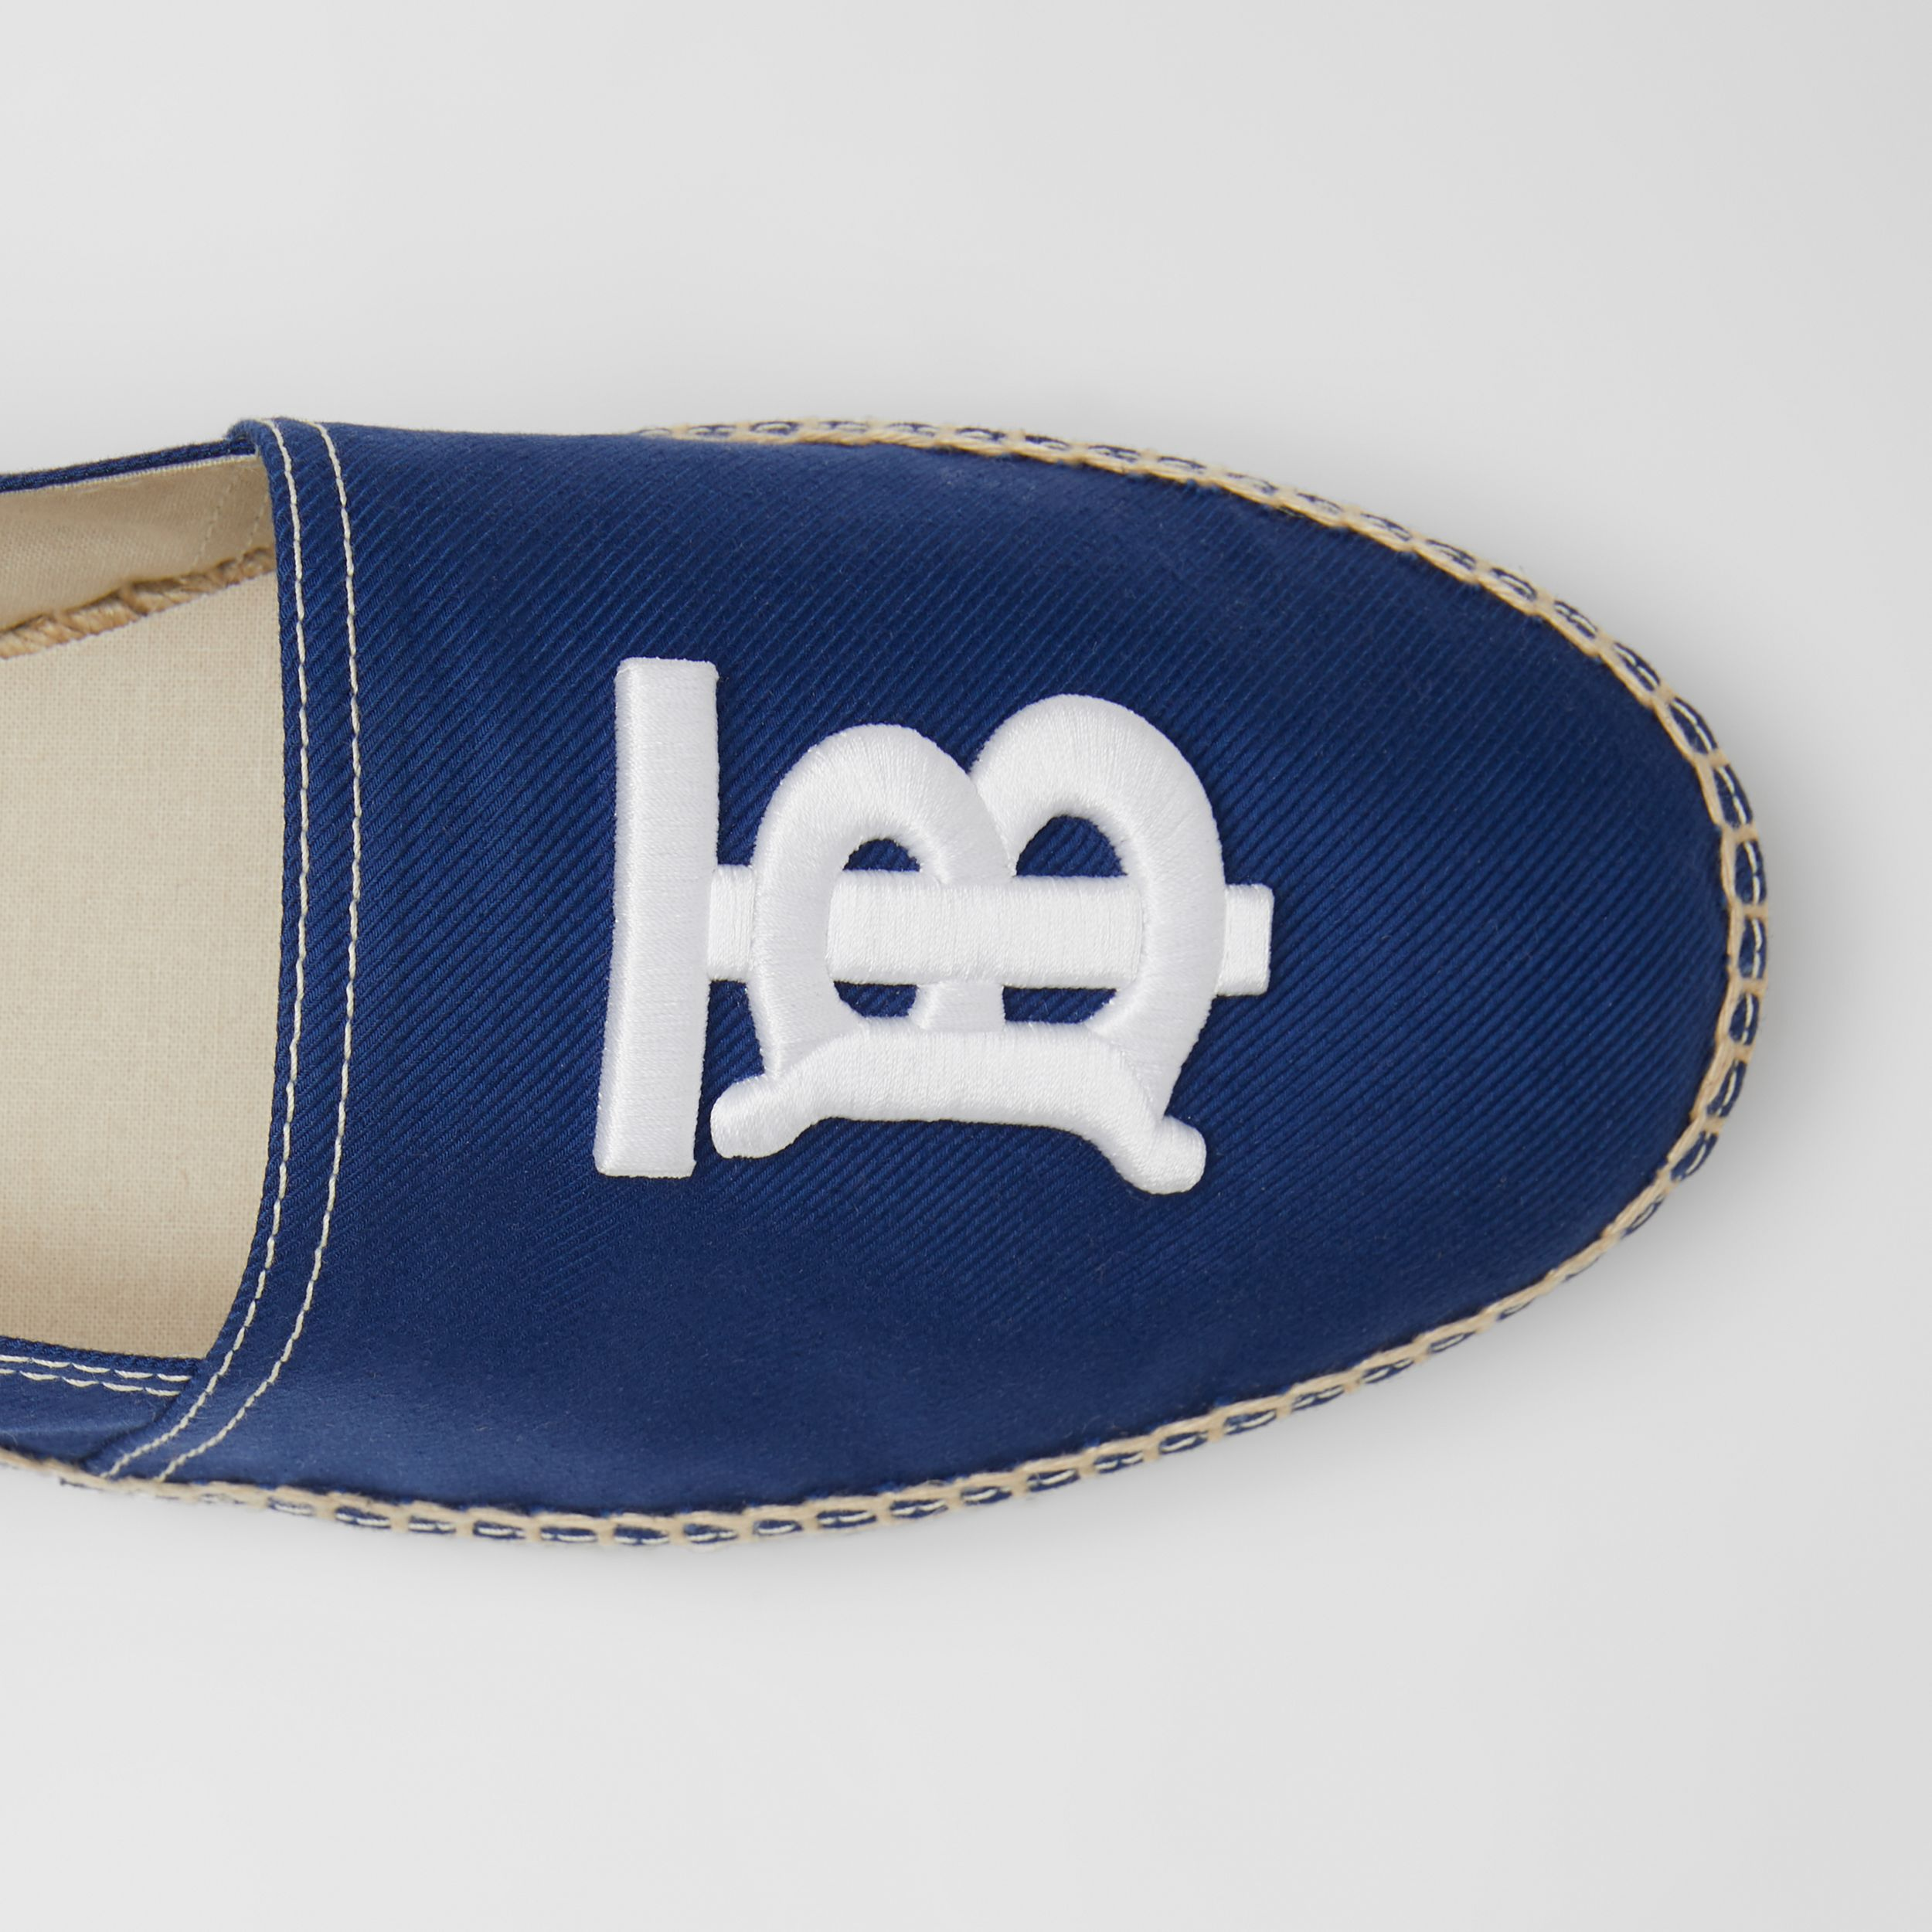 Monogram Motif Cotton Canvas Espadrilles in Navy - Men | Burberry - 2